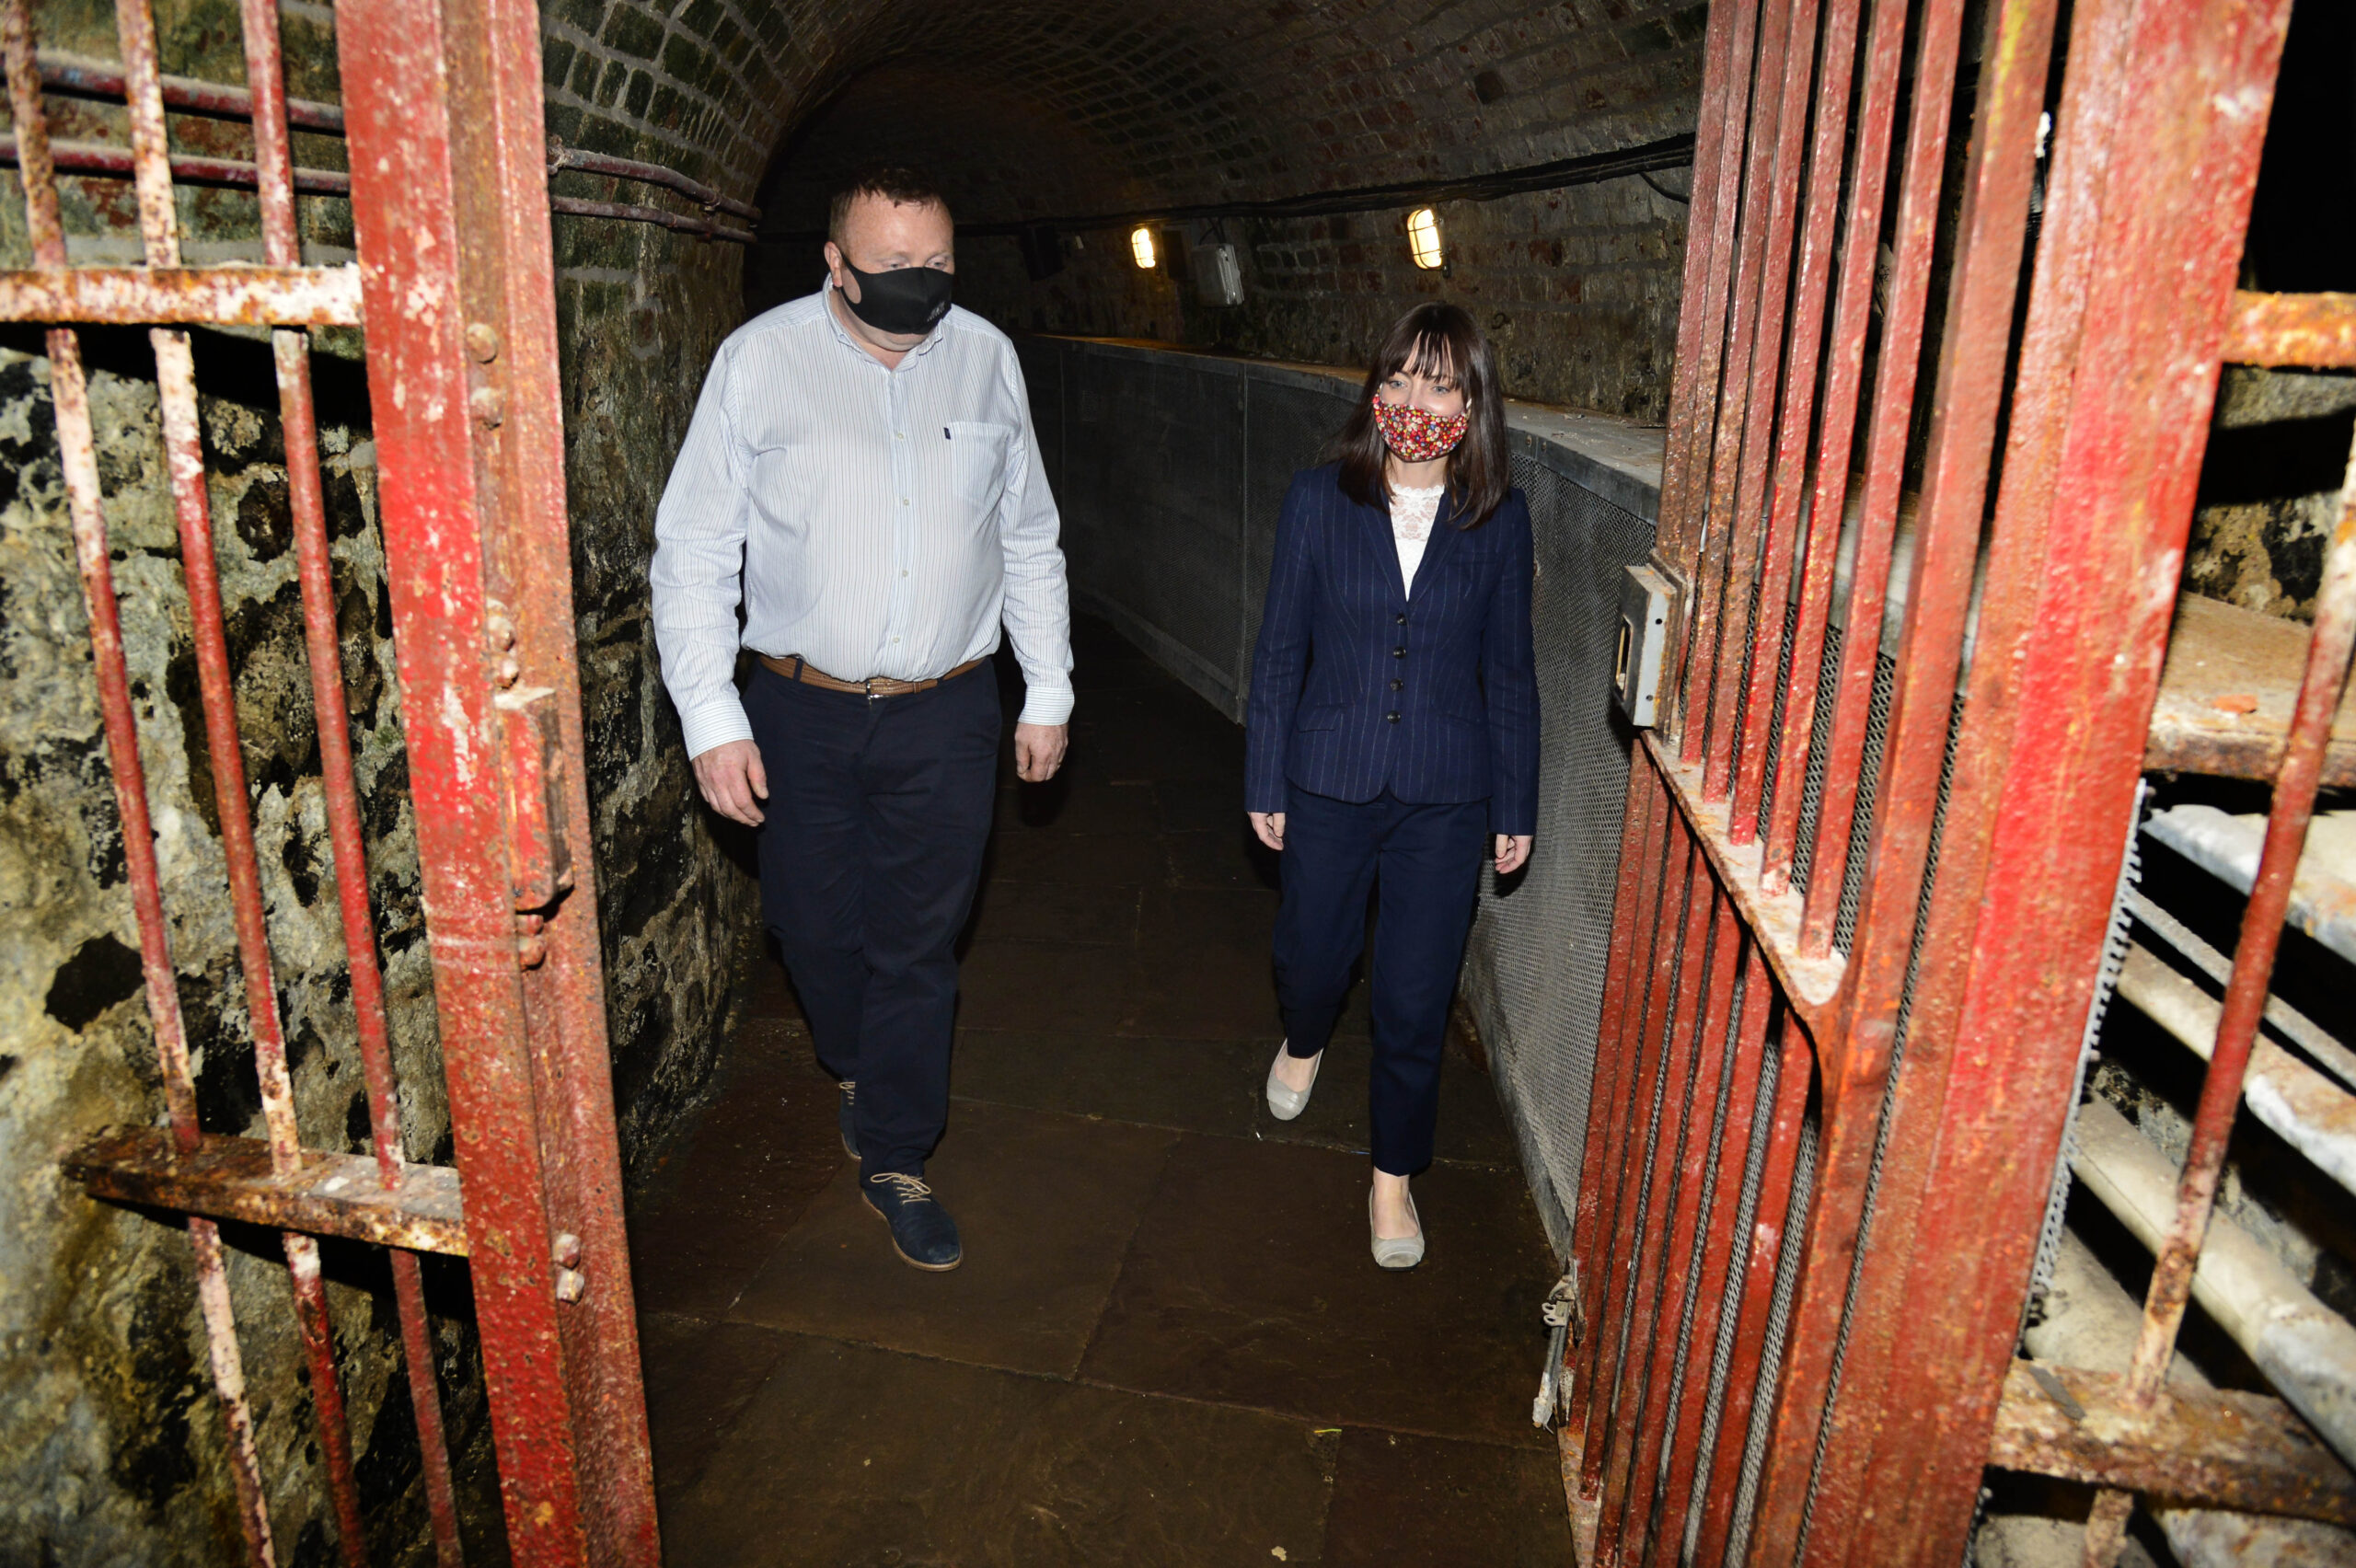 Minister Mallon takes a step back in time at Crumlin Road Gaol | Newry Times - newry newspaper